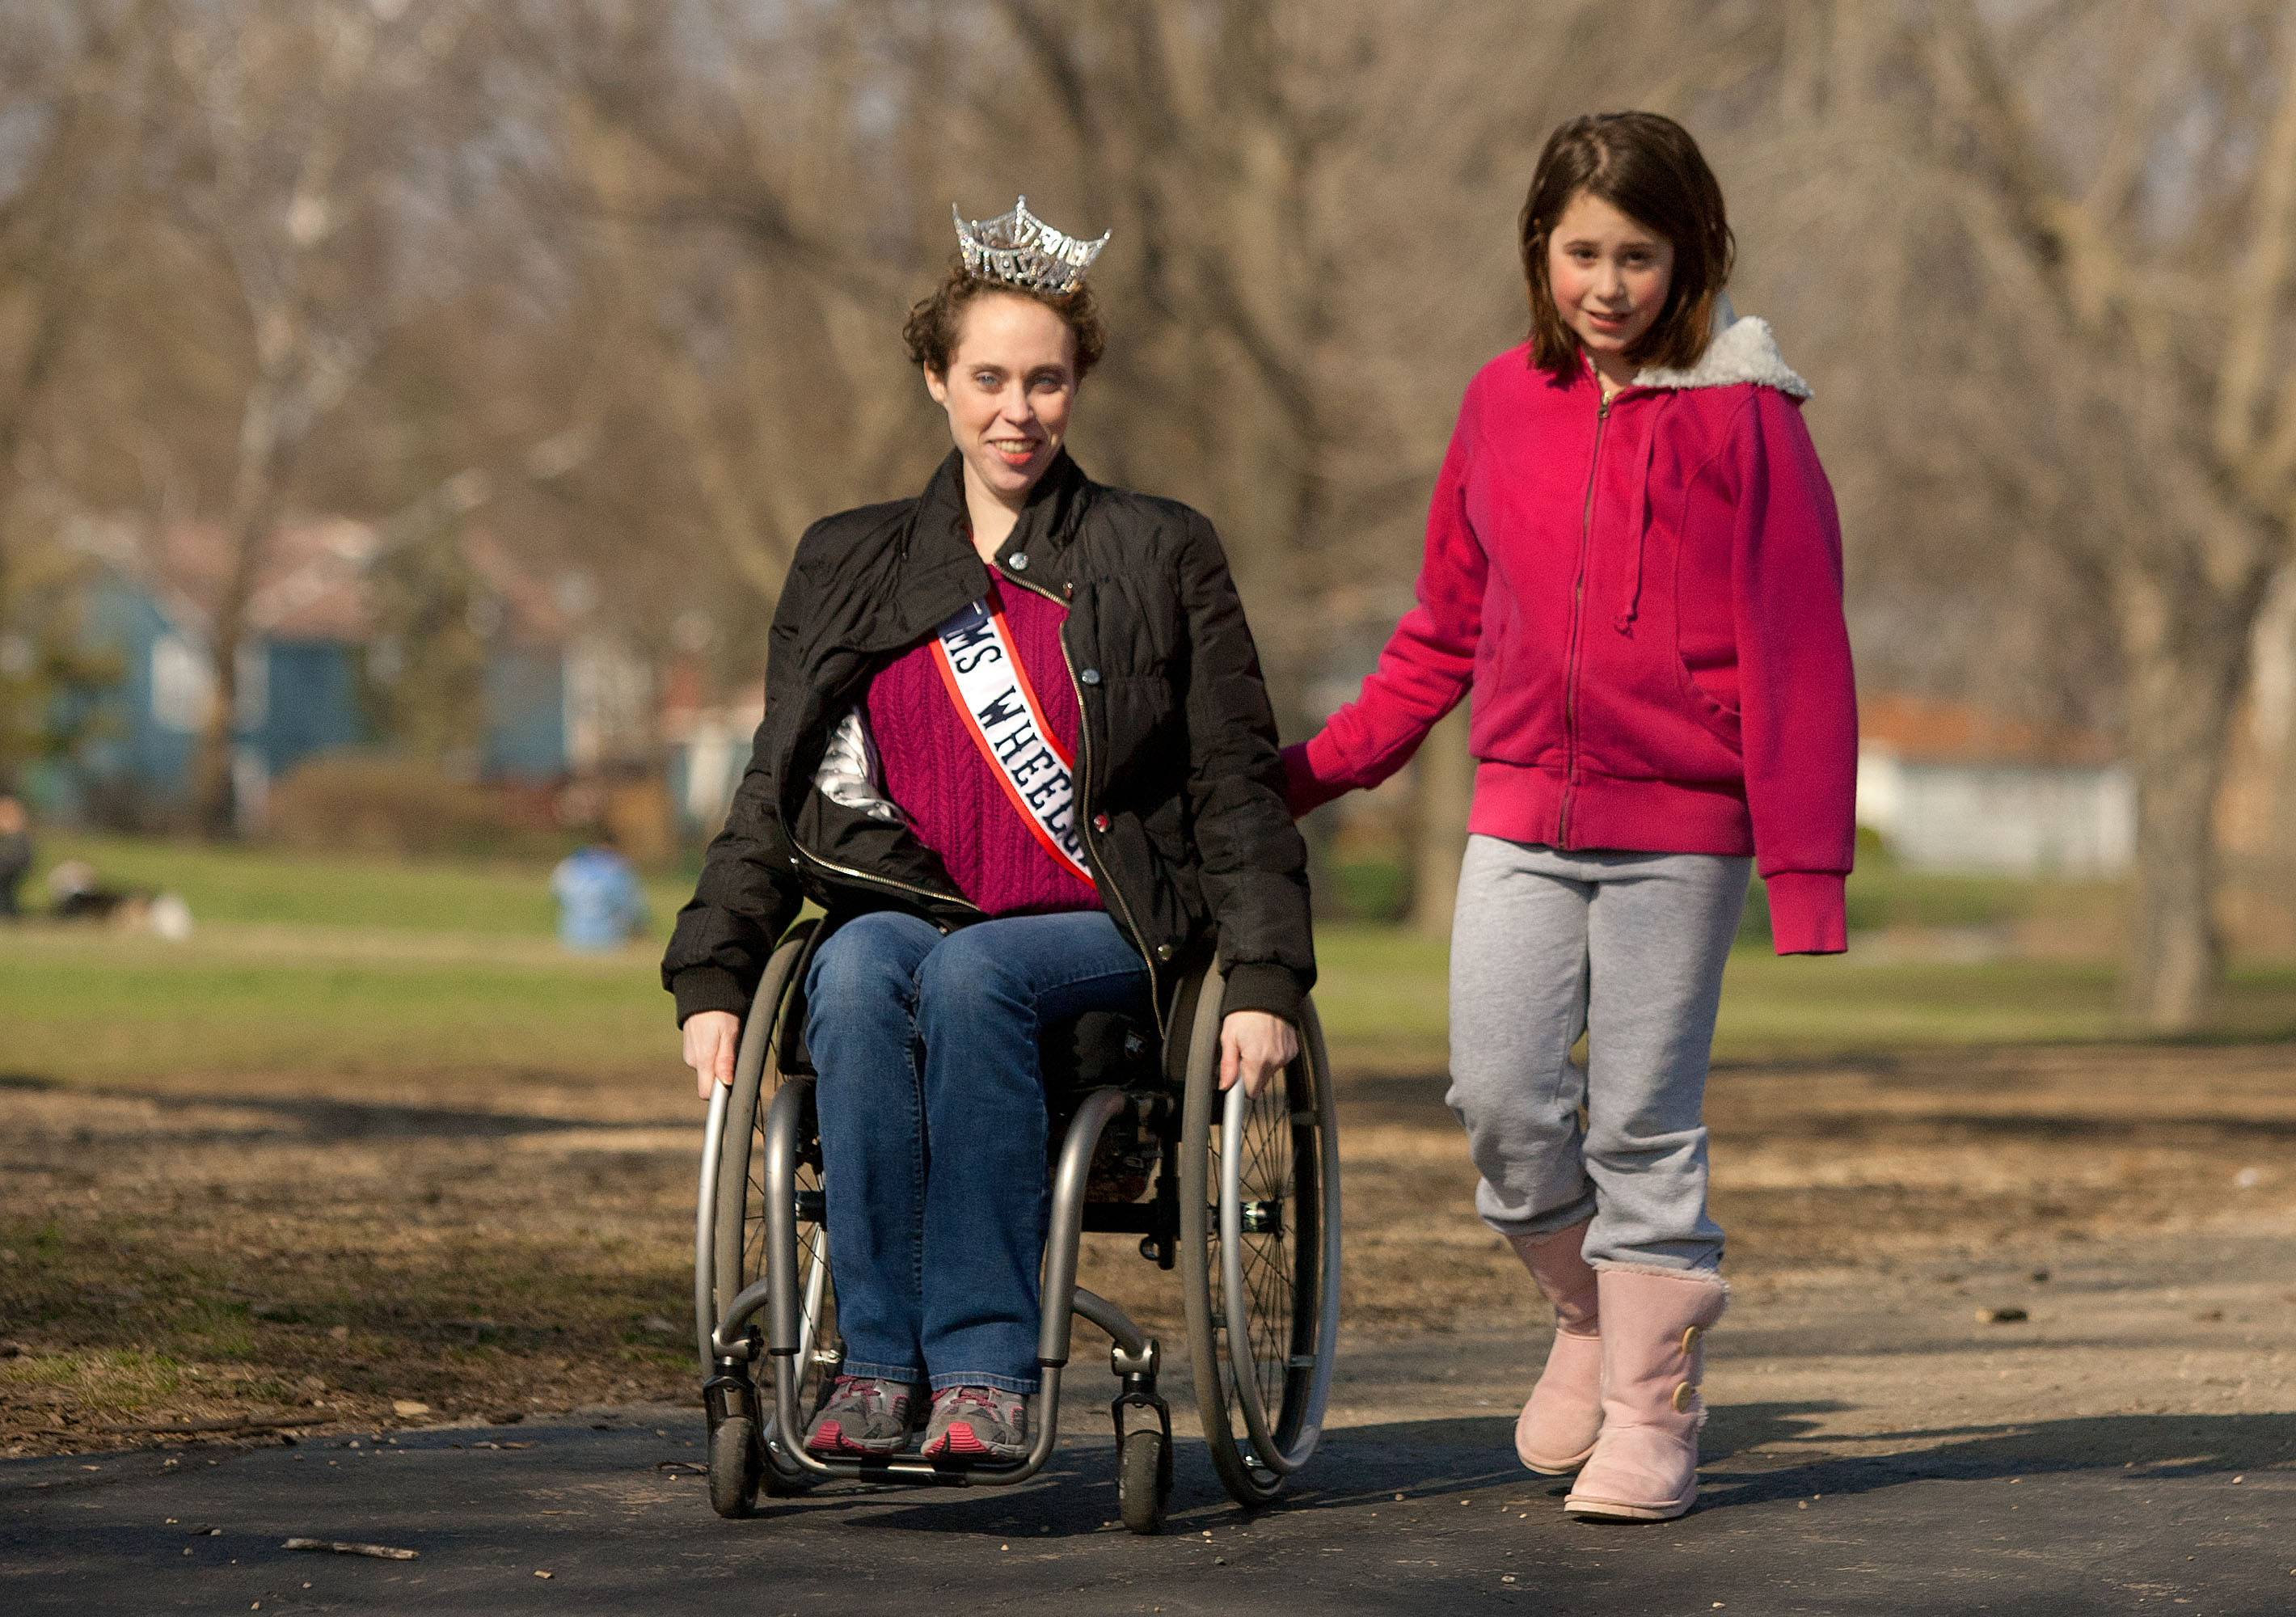 Lombard native Pearl Gannon says her 10-year-old sister Abby is her biggest supporter. Gannon, 27, recently was named Ms. Wheelchair Illinois.